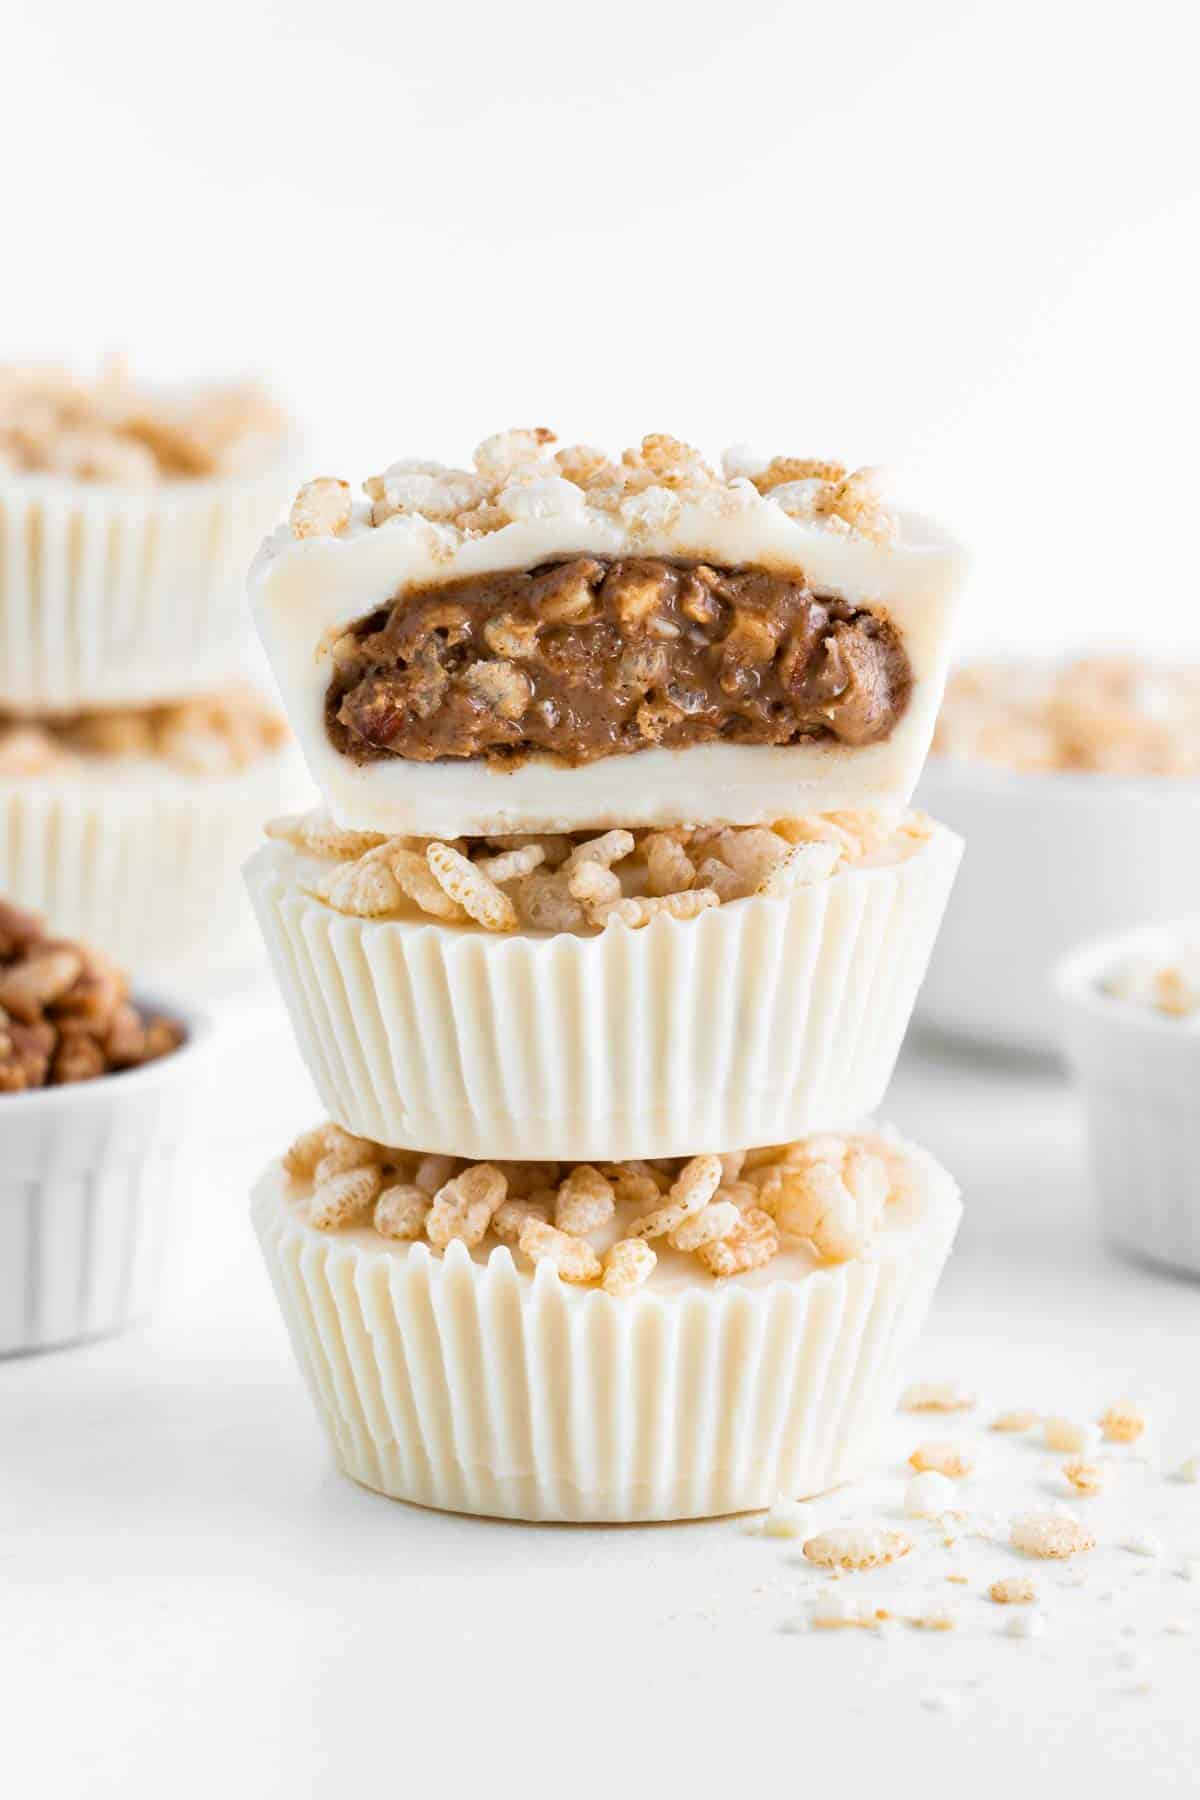 a stack of three crispy white chocolate almond butter cups with a bite taken out of the top one